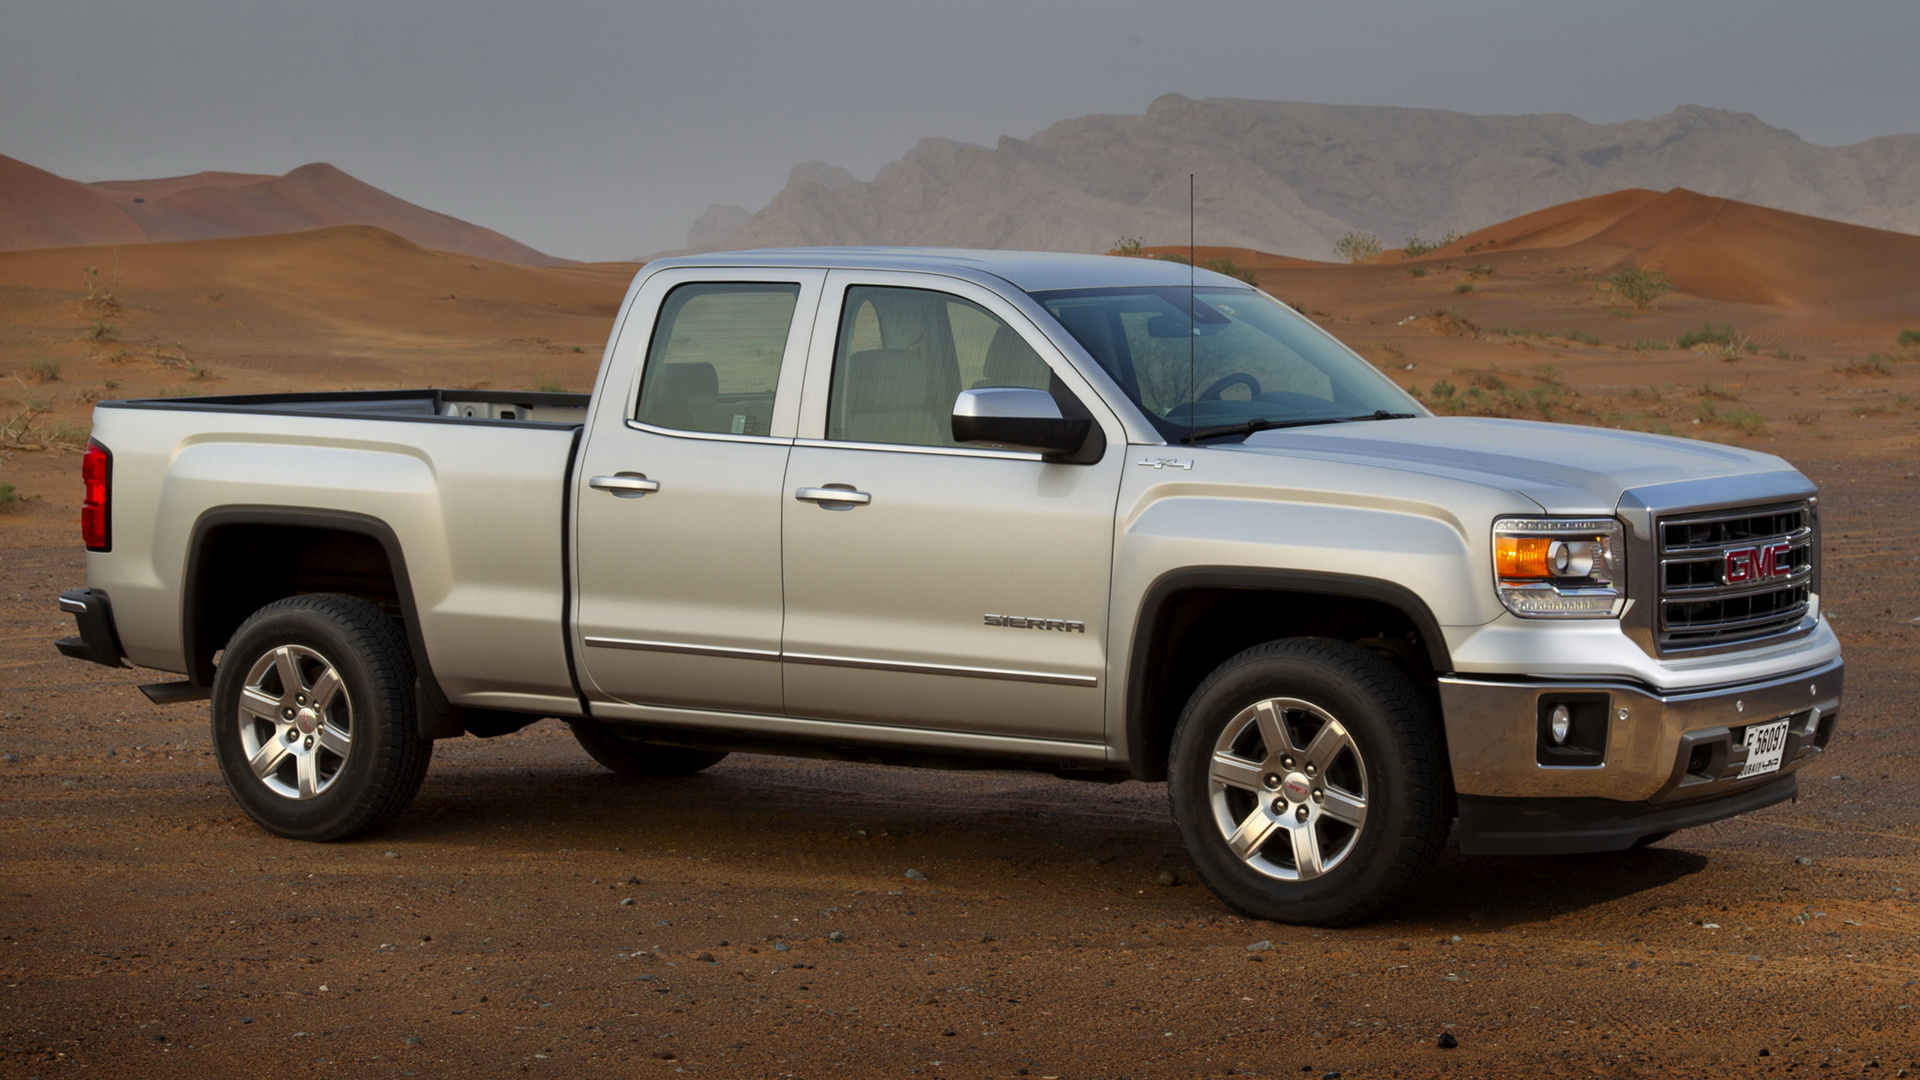 GMC Sierra 1500 SLT Double Cab (2014) Wallpapers and HD Images - Car Pixel